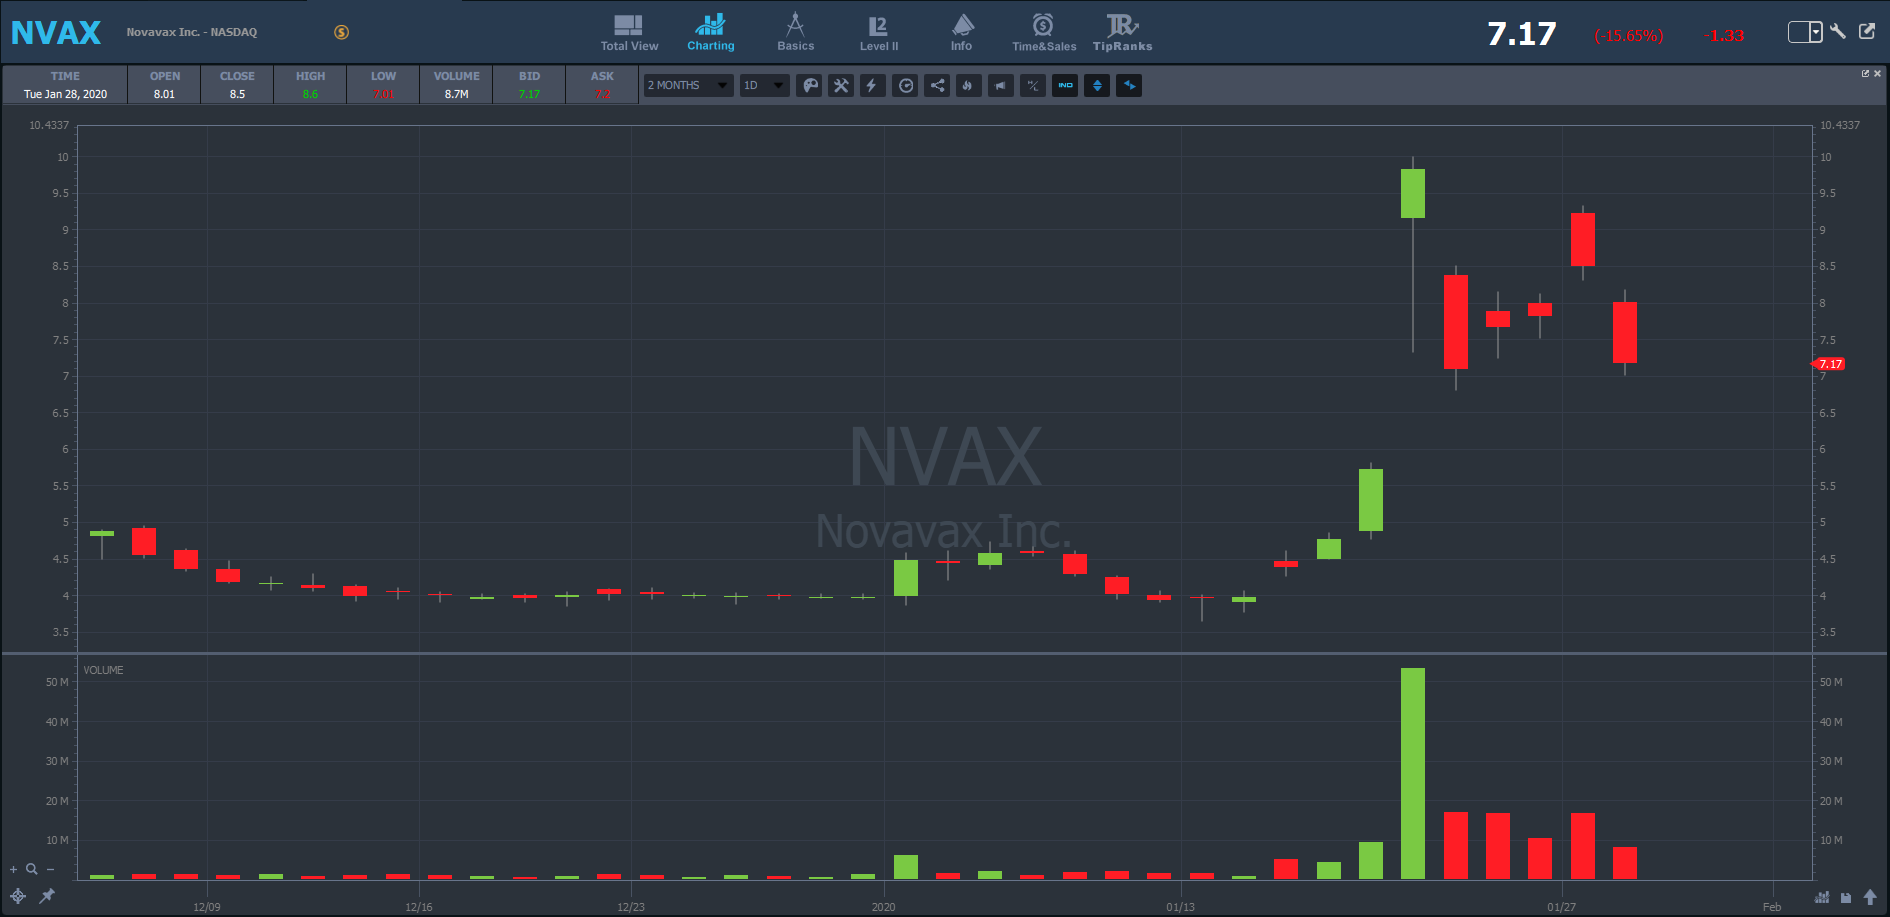 NVAX chart watch this stock during virus outbreaks